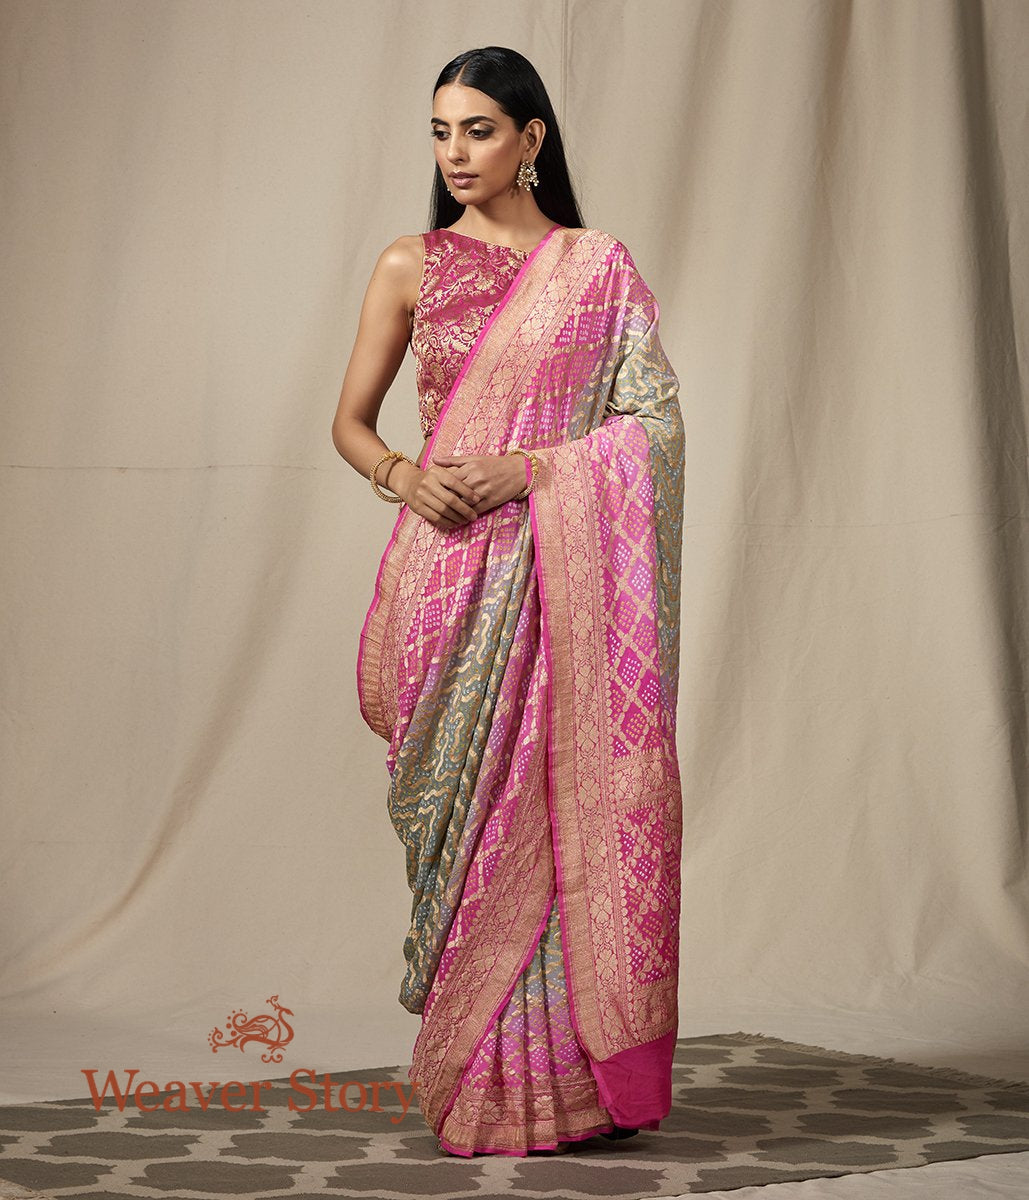 Handwoven Banarasi Bandhej Saree in Grey and Pink ombre dye